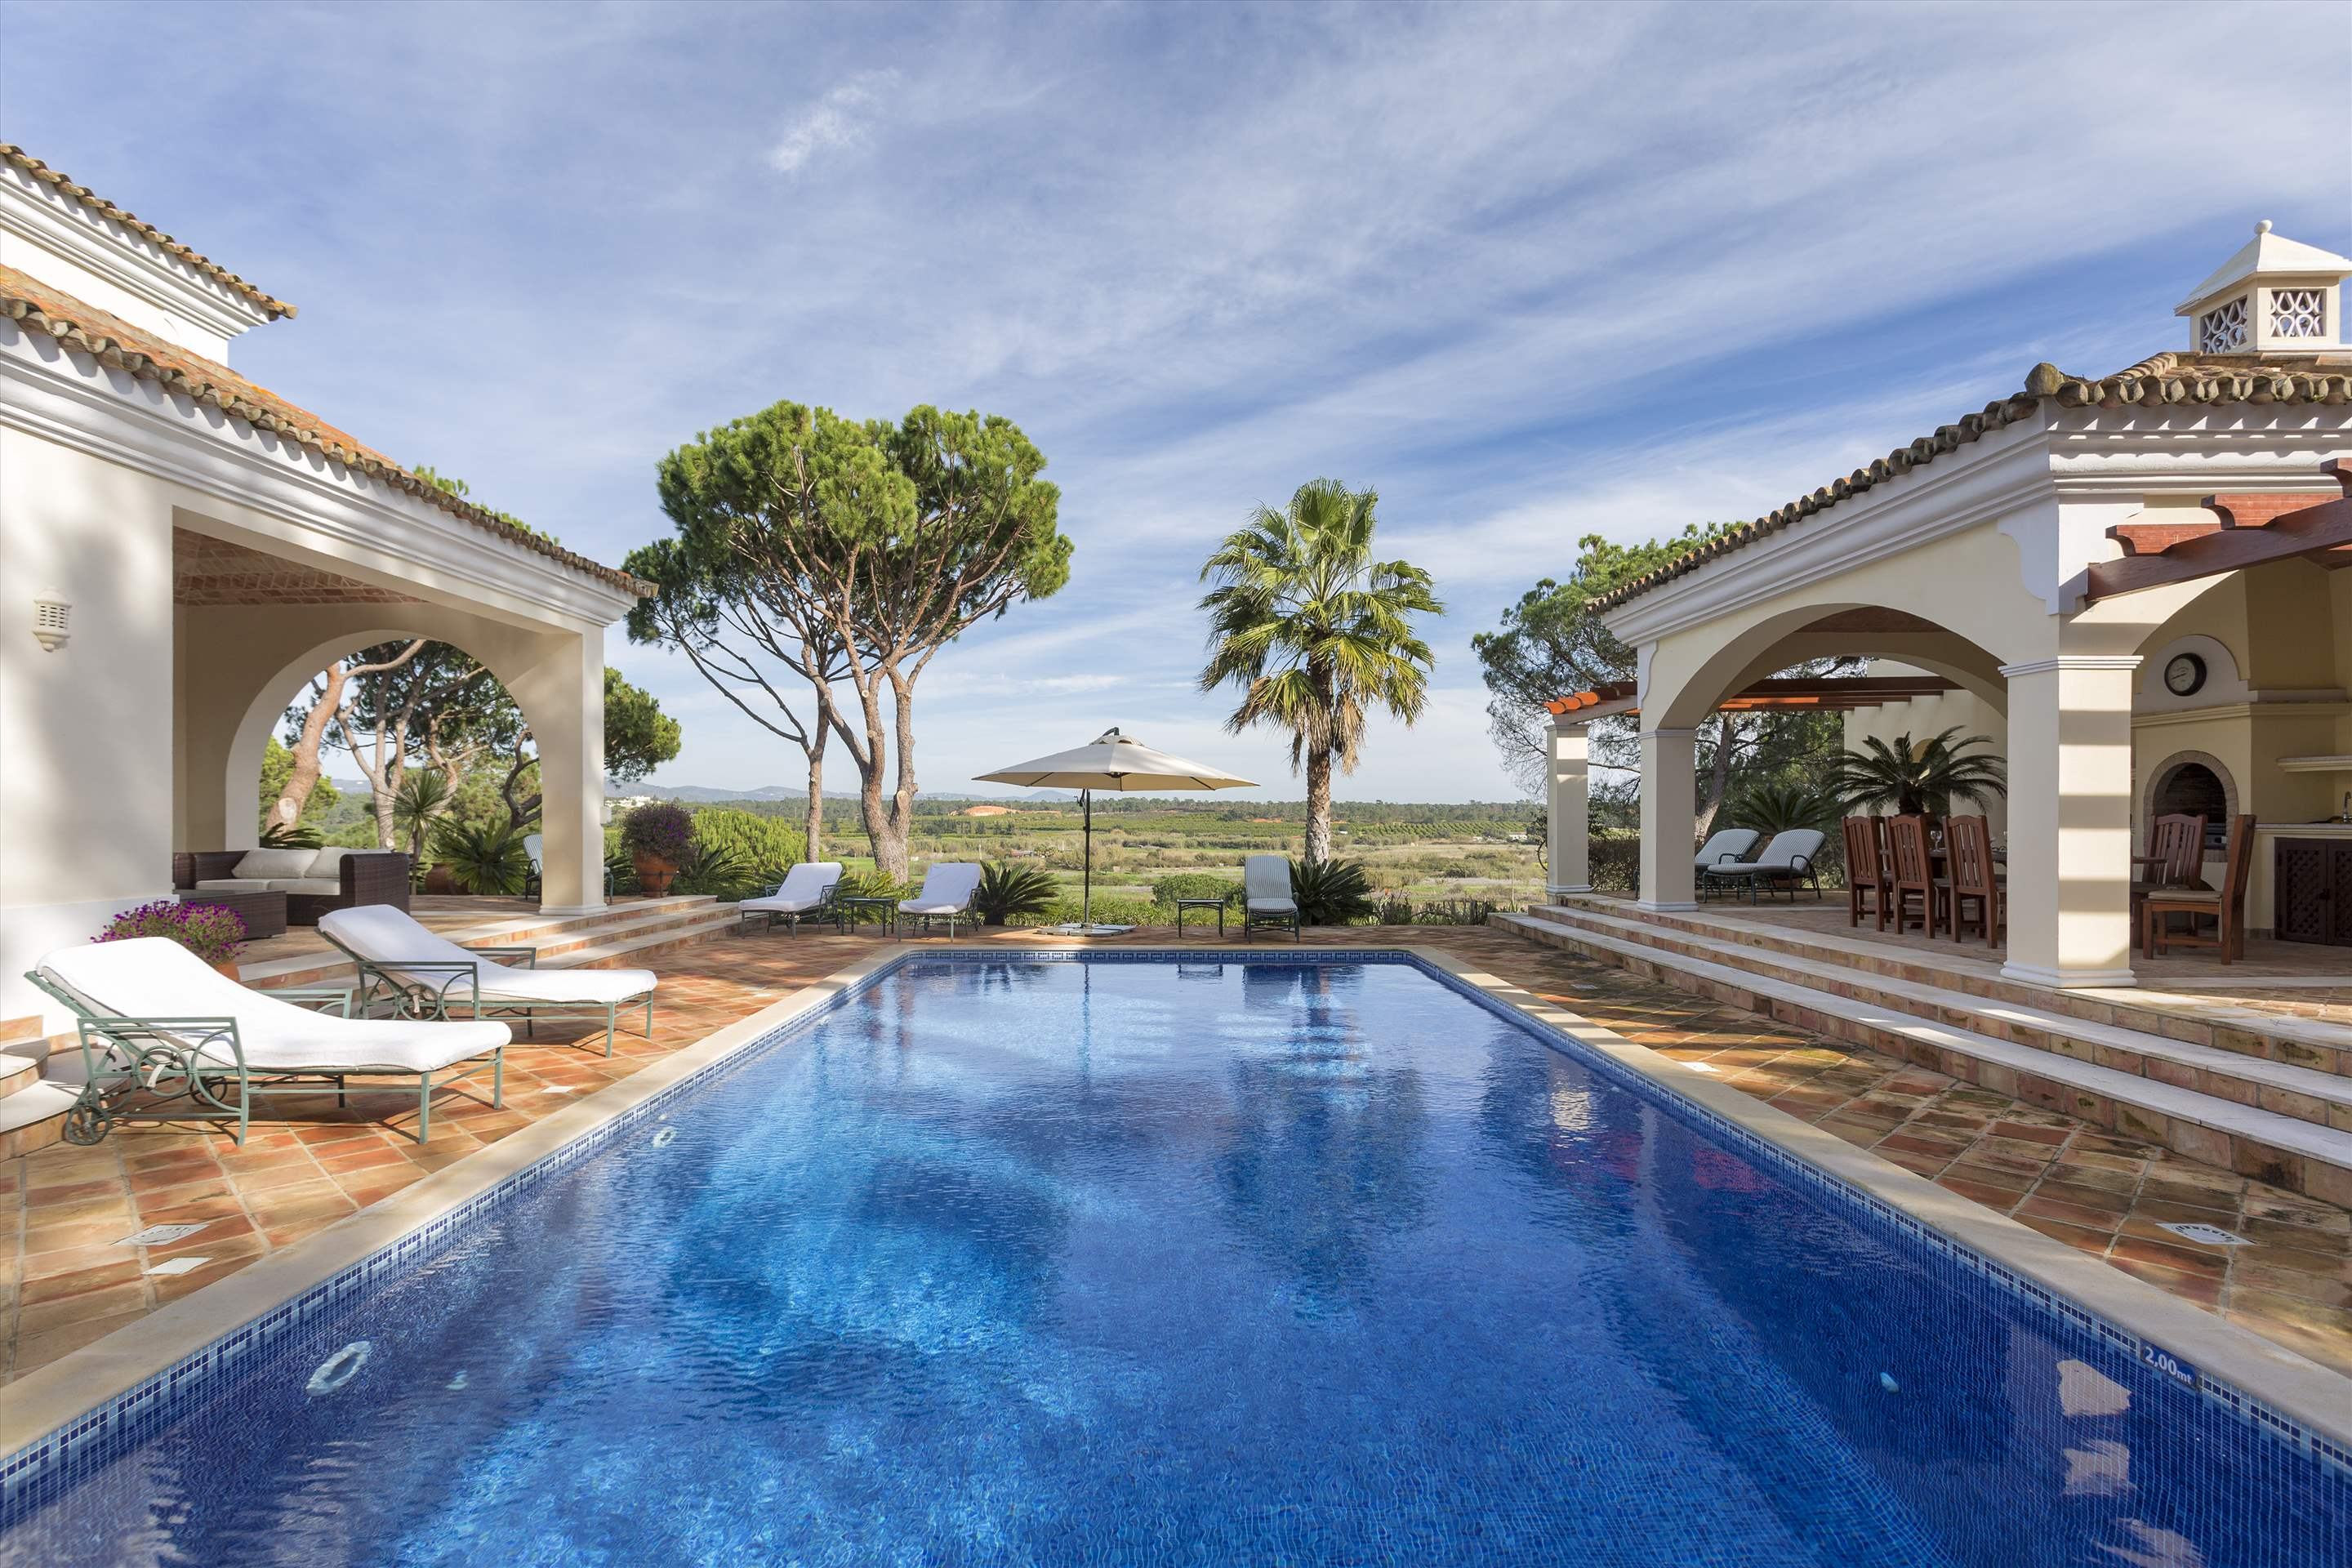 Villa Palmeiras Altas, 5 bedroom villa in Quinta do Lago, Algarve Photo #2